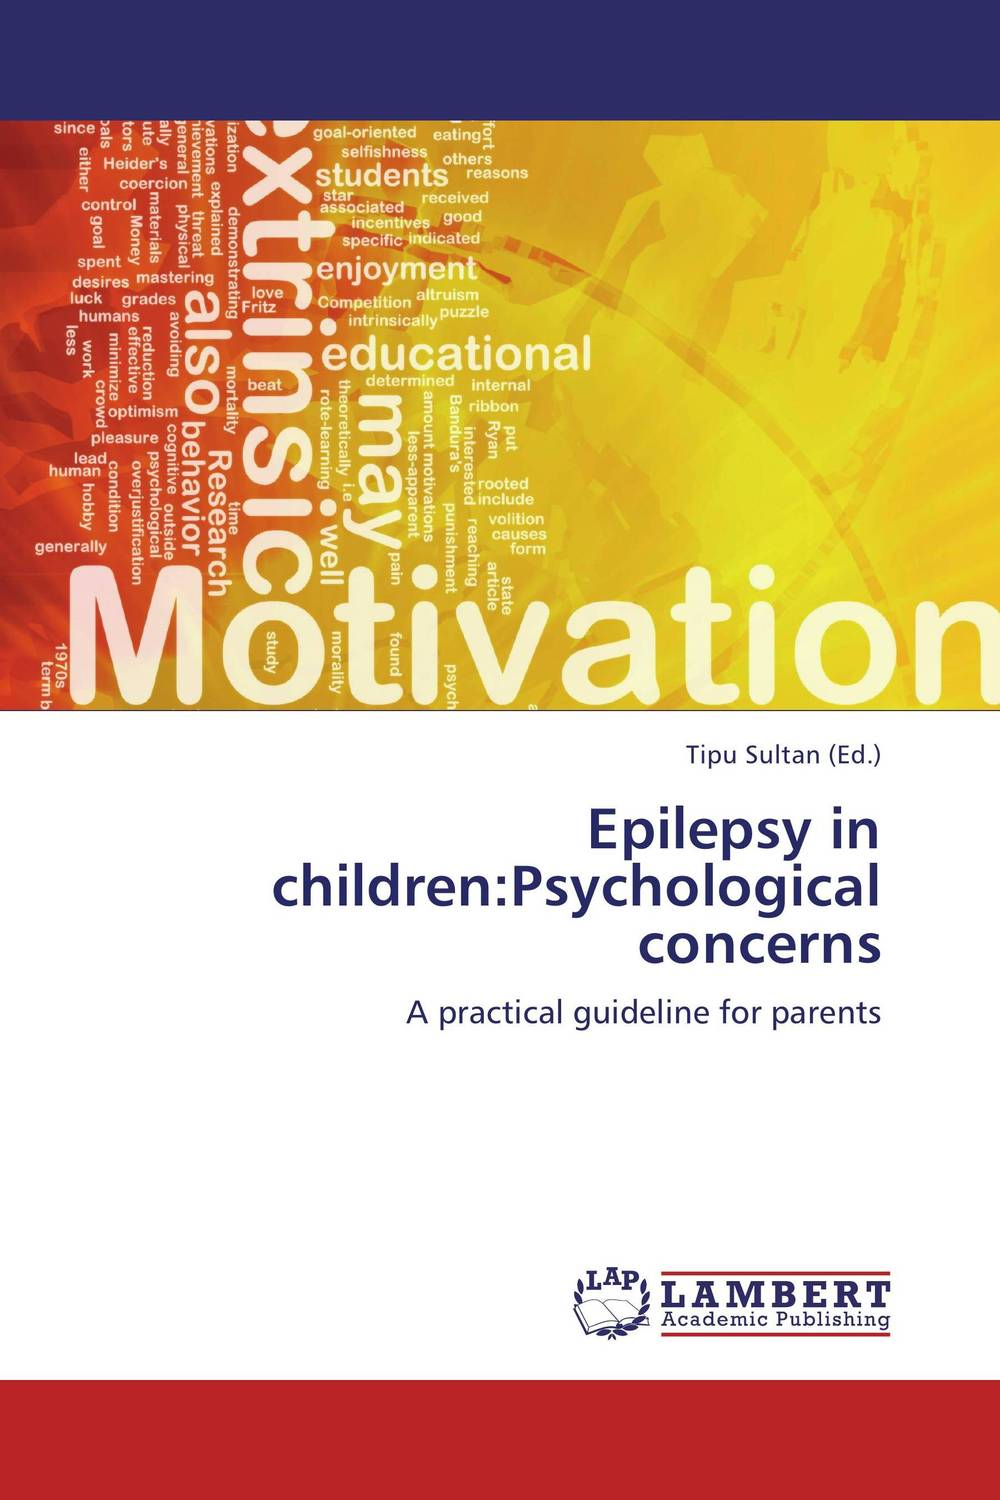 Epilepsy in children:Psychological concerns epilepsy in children psychological concerns